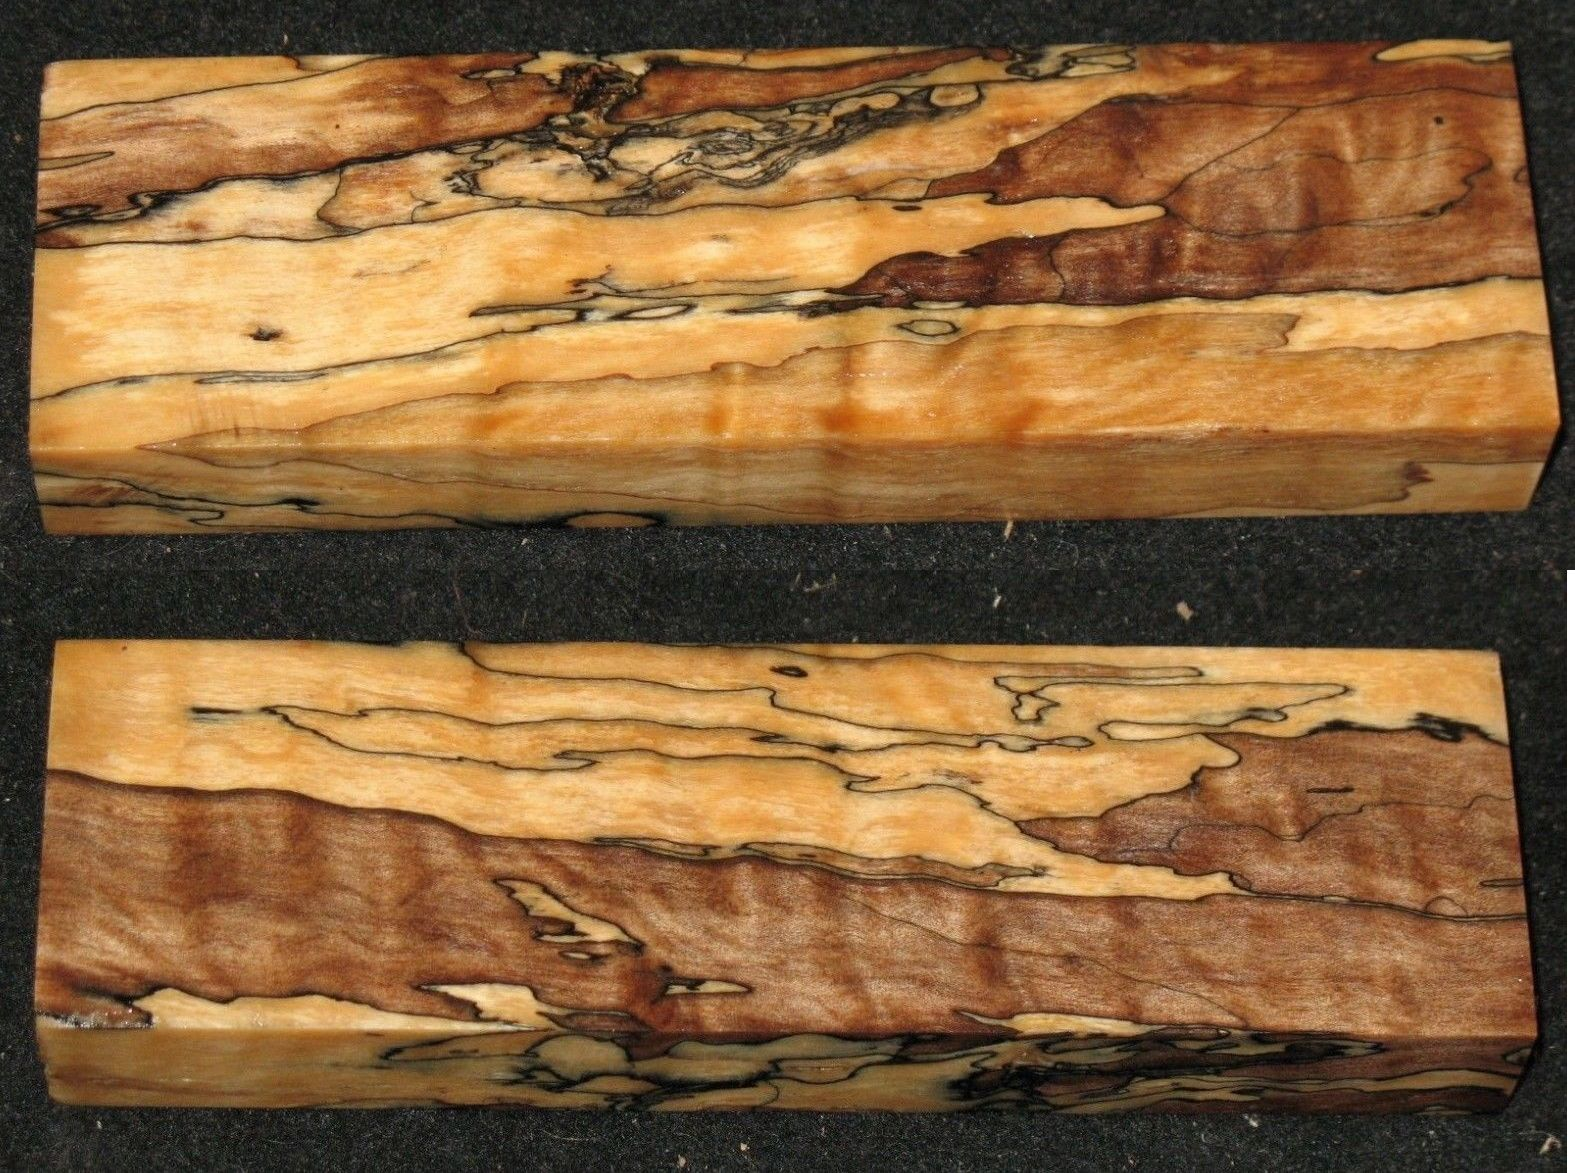 Woodworking Lumber 84011 Stabilized Quilted Spalted Maple Blank Craft Art Knife Call Pen Blank 6 Aaaaa Buy It Now Only Knife Art Spalted Maple Pen Blanks